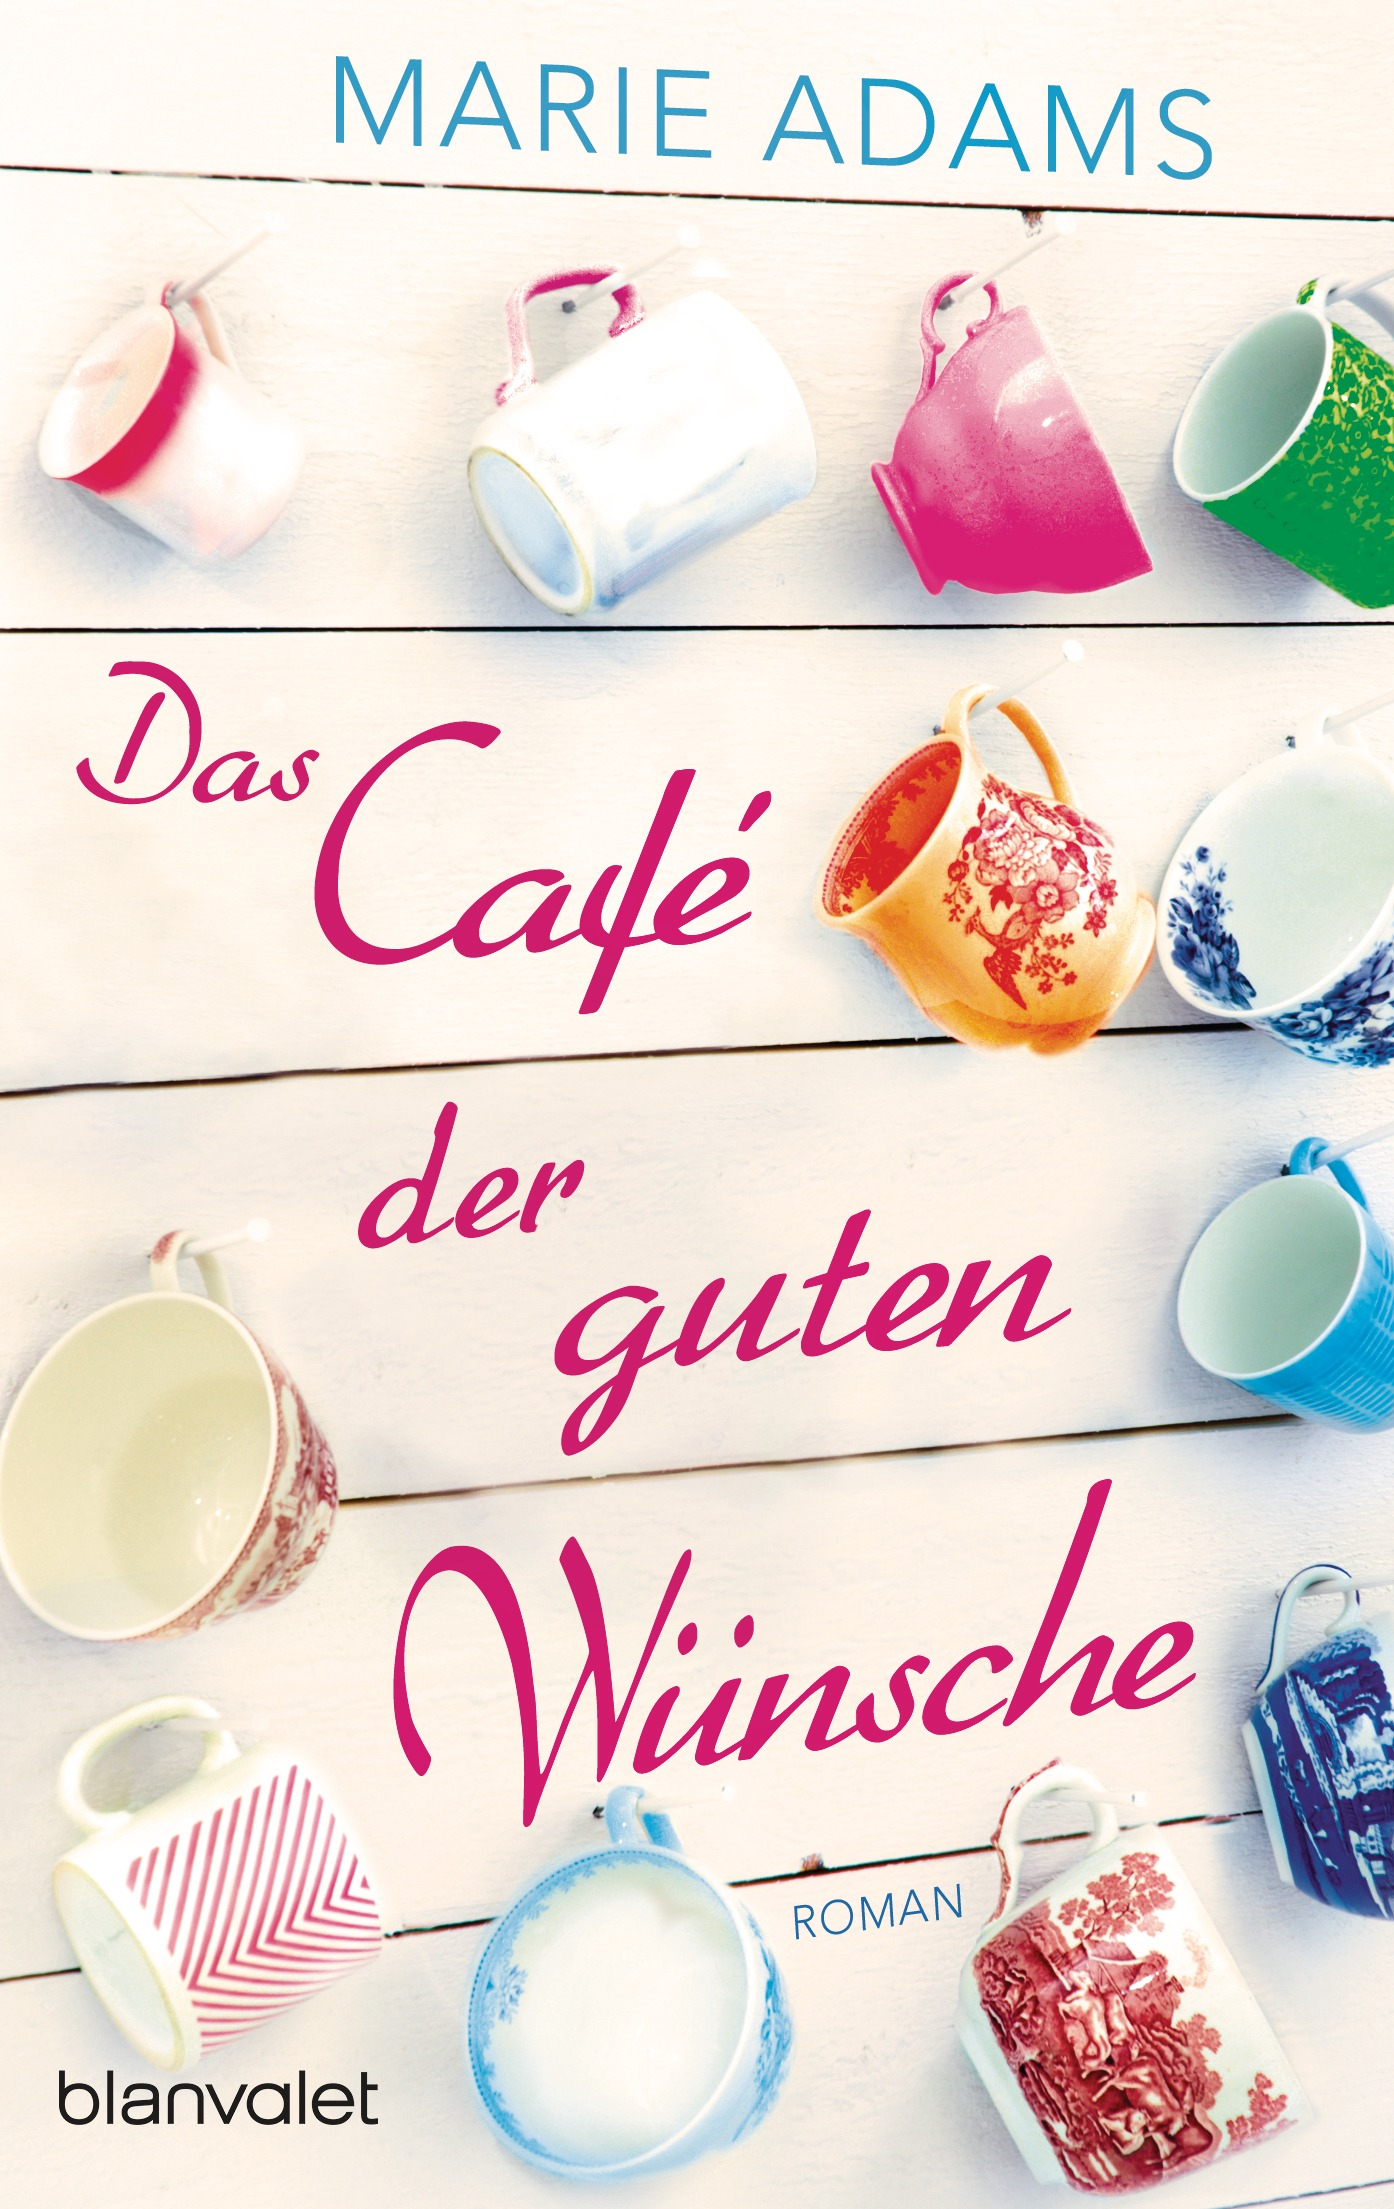 https://www.randomhouse.de/content/edition/covervoila_hires/Adams_MDas_Cafe_der_guten_Wuensche_164111.jpg